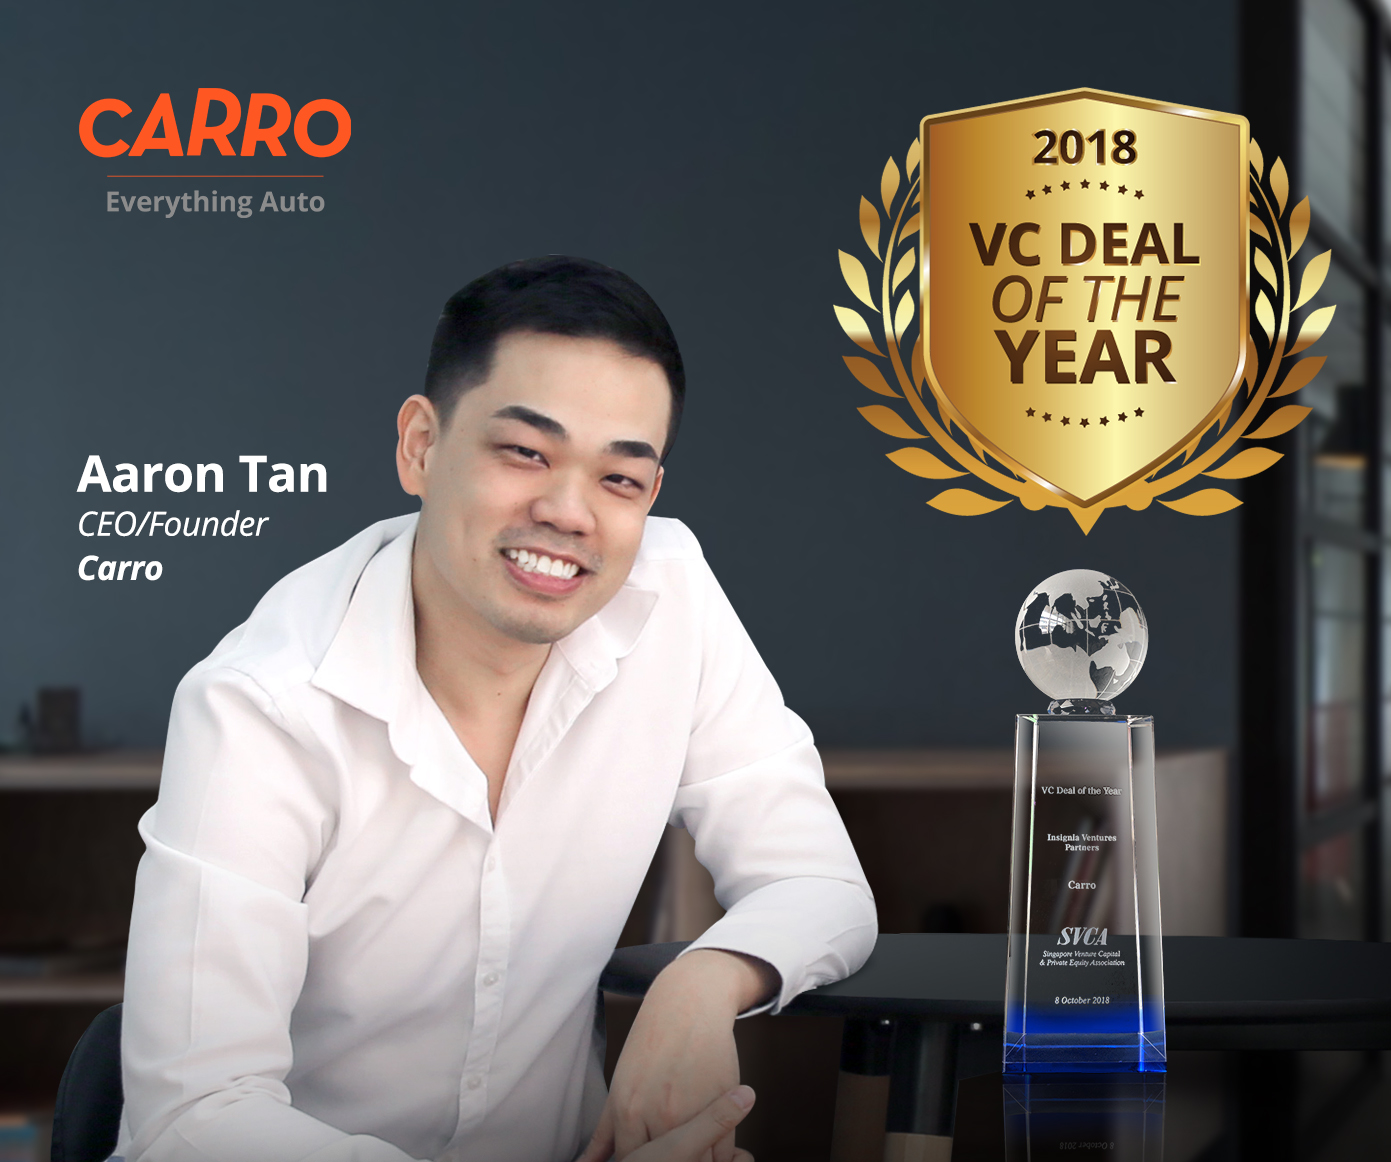 Carro Bags the VC Deal of the Year Award 2018